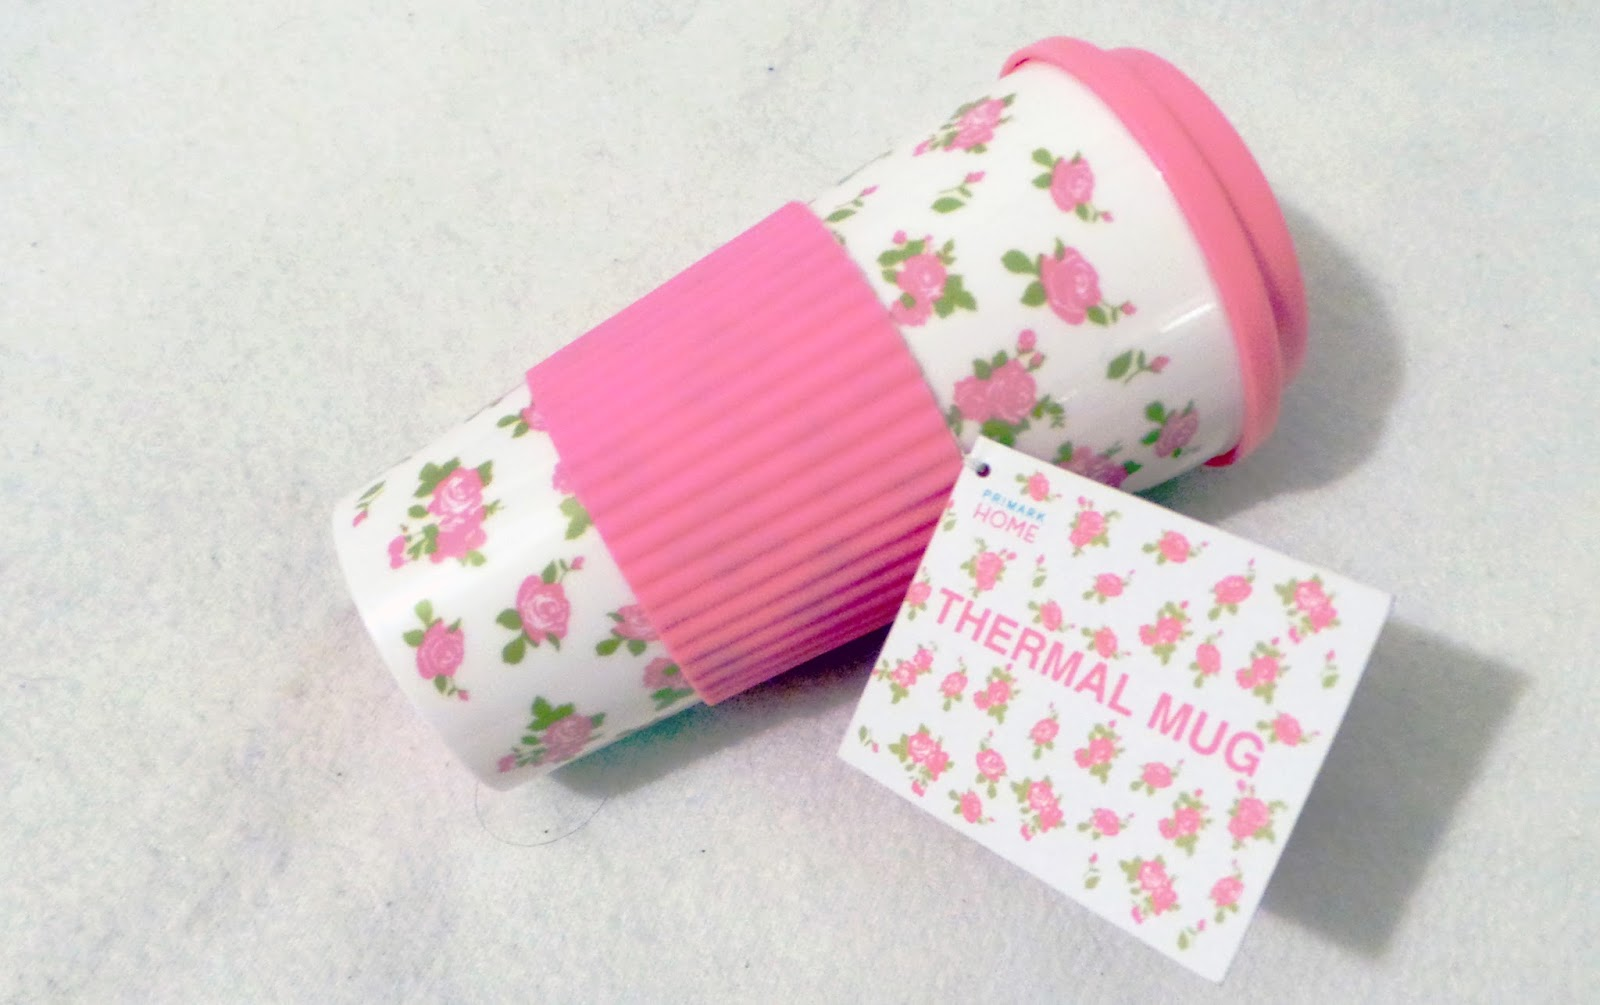 Nice Travel Mug Lauras All Made Up Uk Beauty Fashion 43 Lifestyle Blog